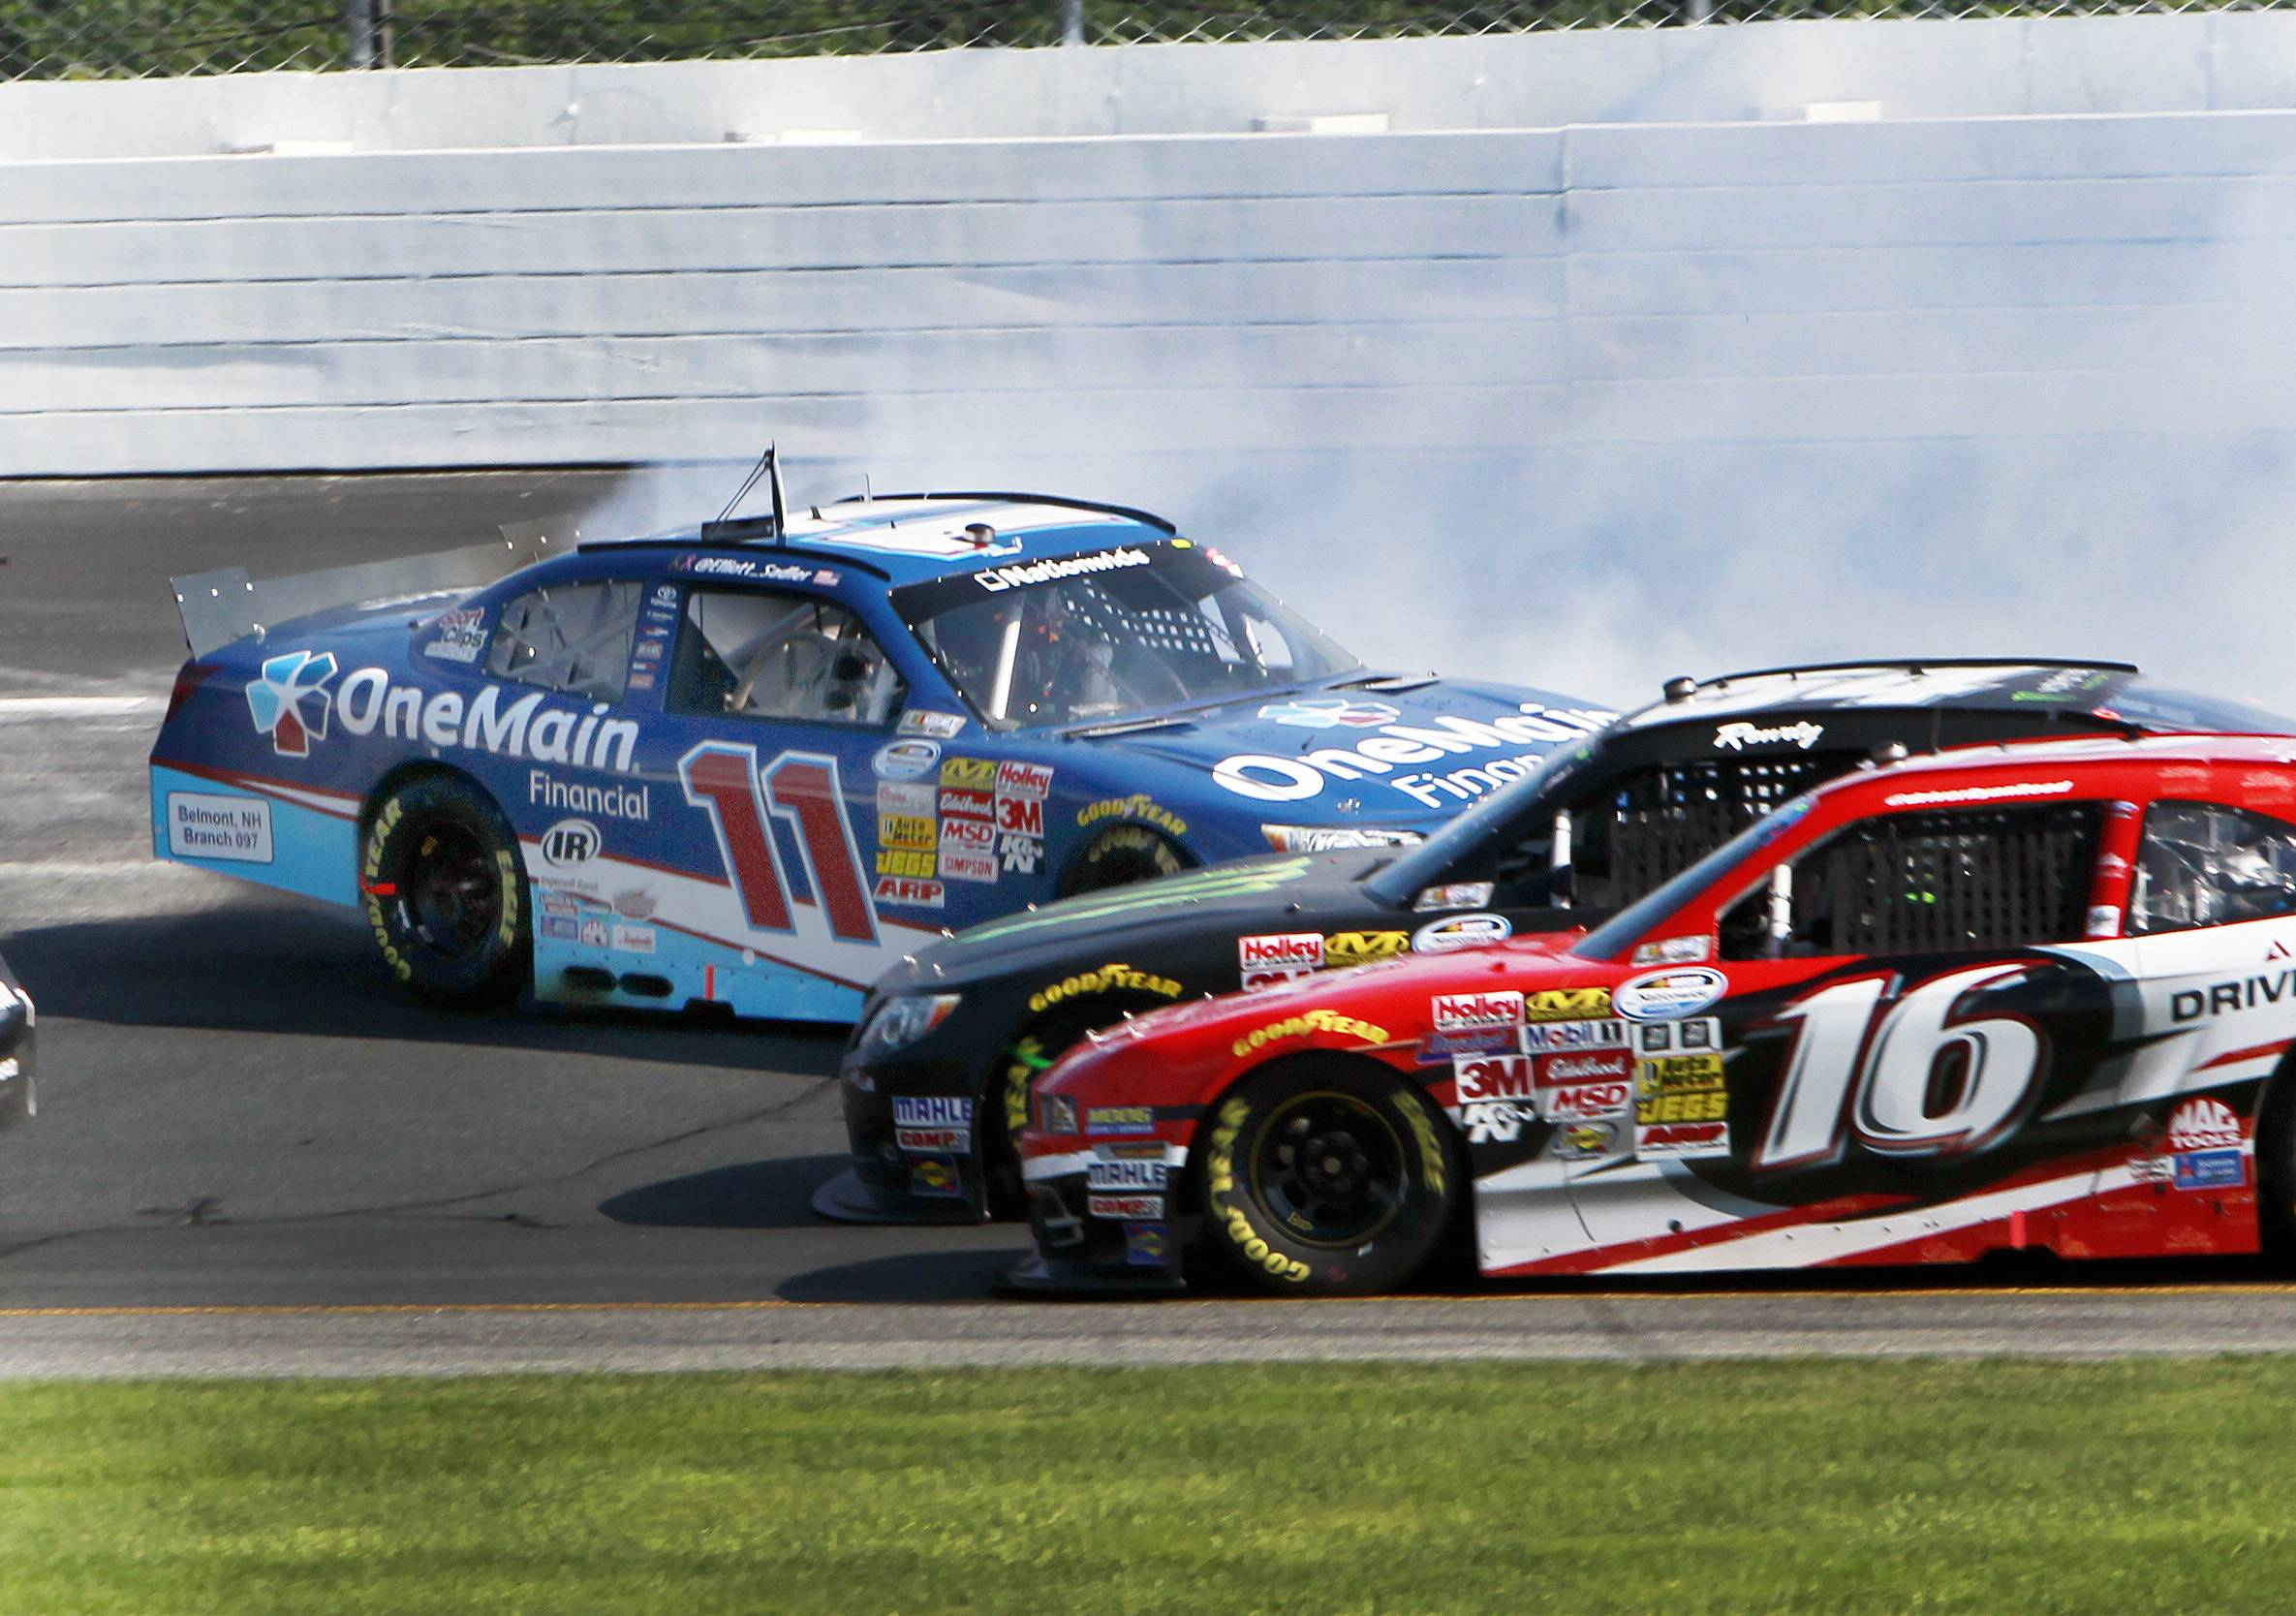 Ryan Reed (16) and Kyle Busch slide under Elliott Sadler during the NASCAR Nationwide Series auto race at New Hampshire Motor Speedway on July 12. Sadler qualified for the $100,000 Dash4Cash at Chicagoland Speedway, which hosts the EnjoyIllinois300.com race on Saturday.